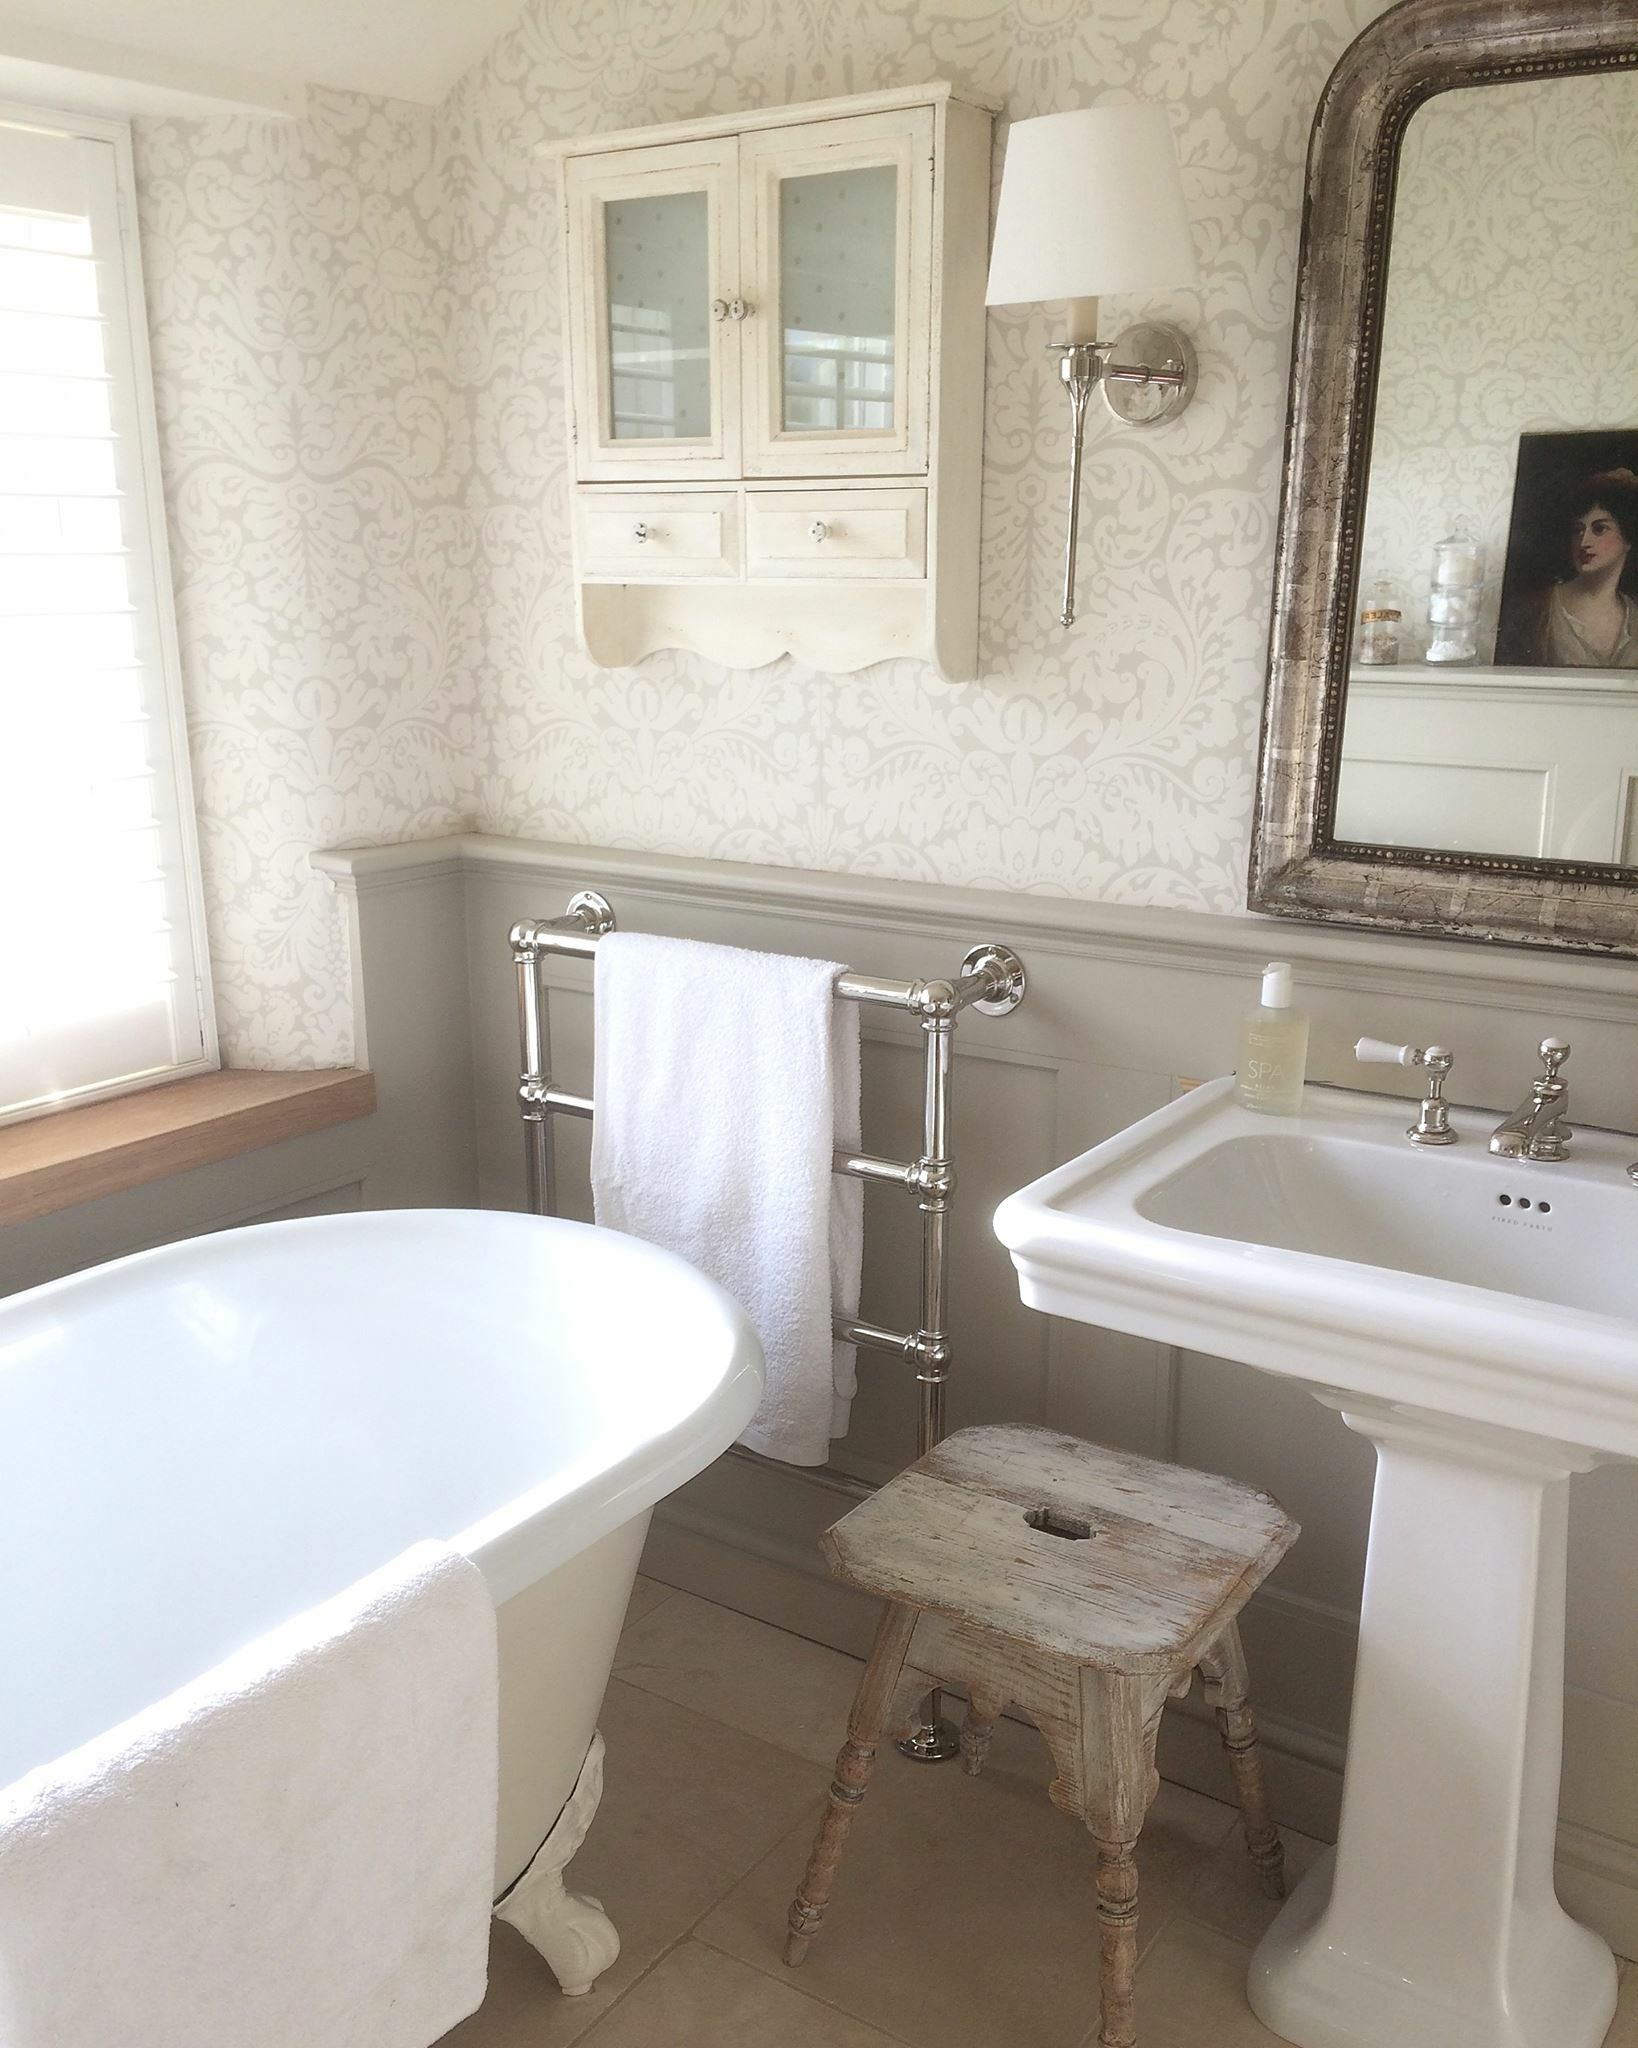 Pin by Tracey Zaffino on Tracey   Pinterest   Vintage bathrooms